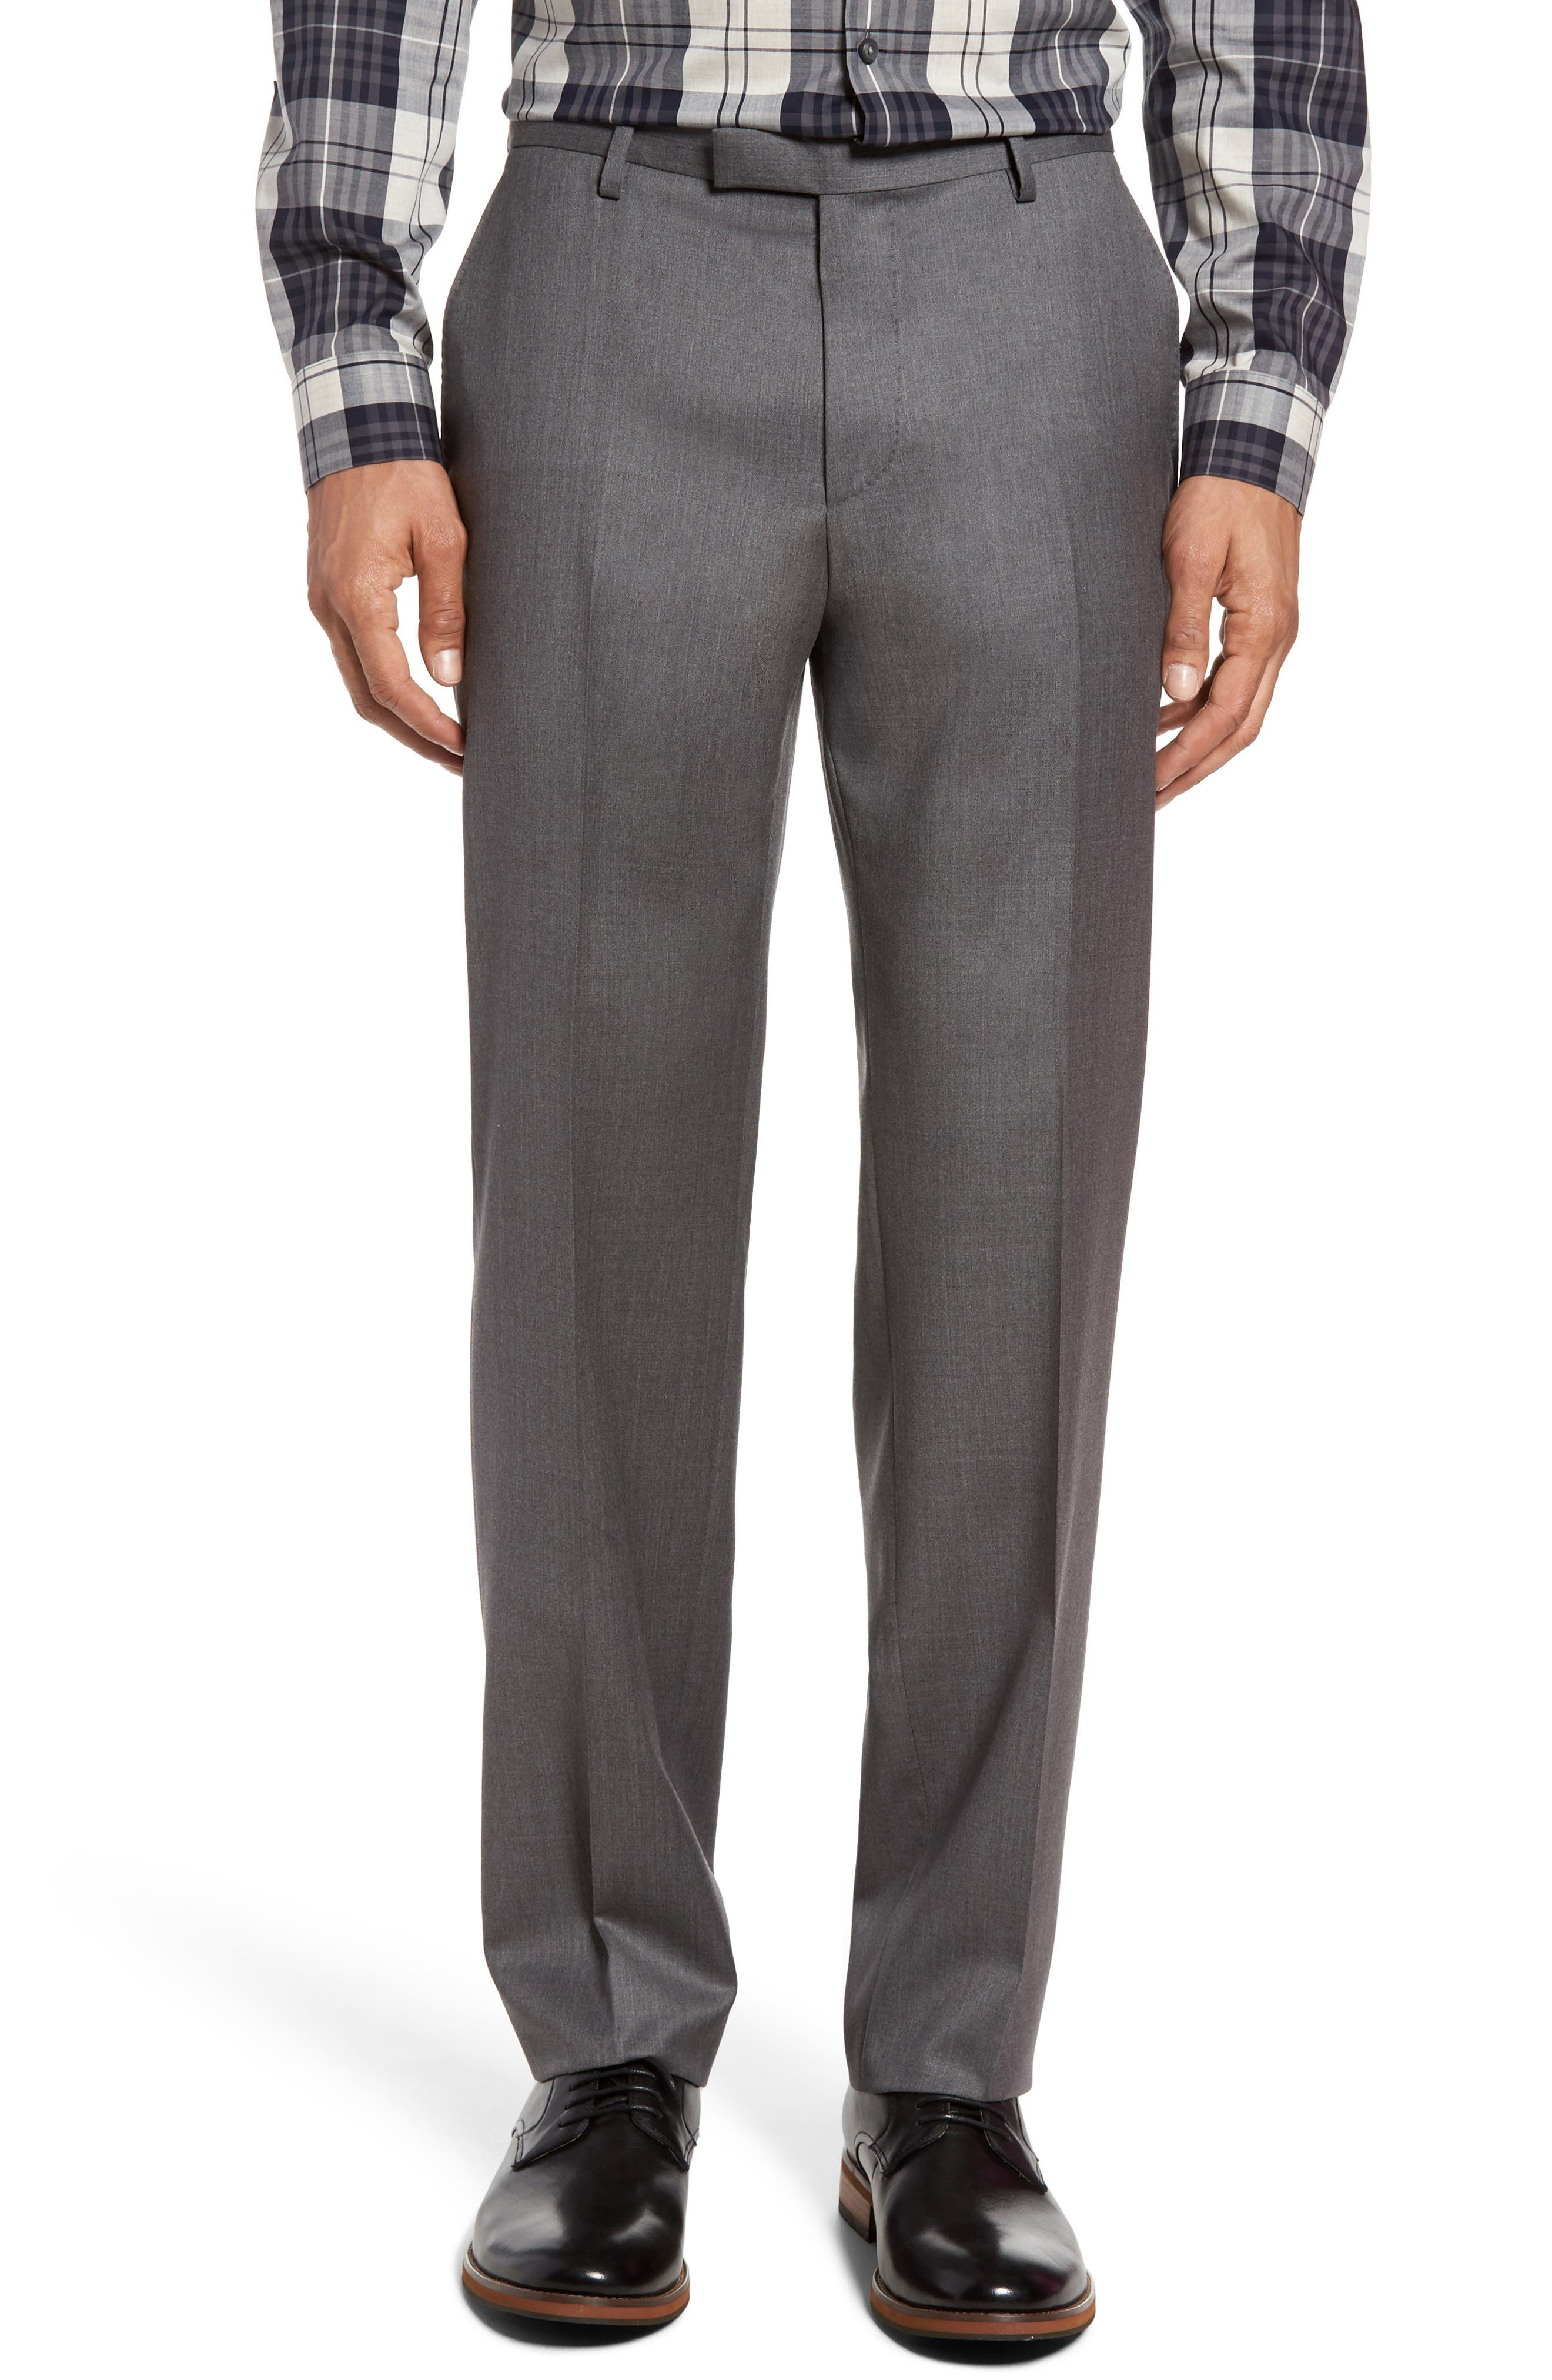 Leenon Flat Front Regular Fit Solid Wool Trousers,                         Main,                         color, Medium Grey